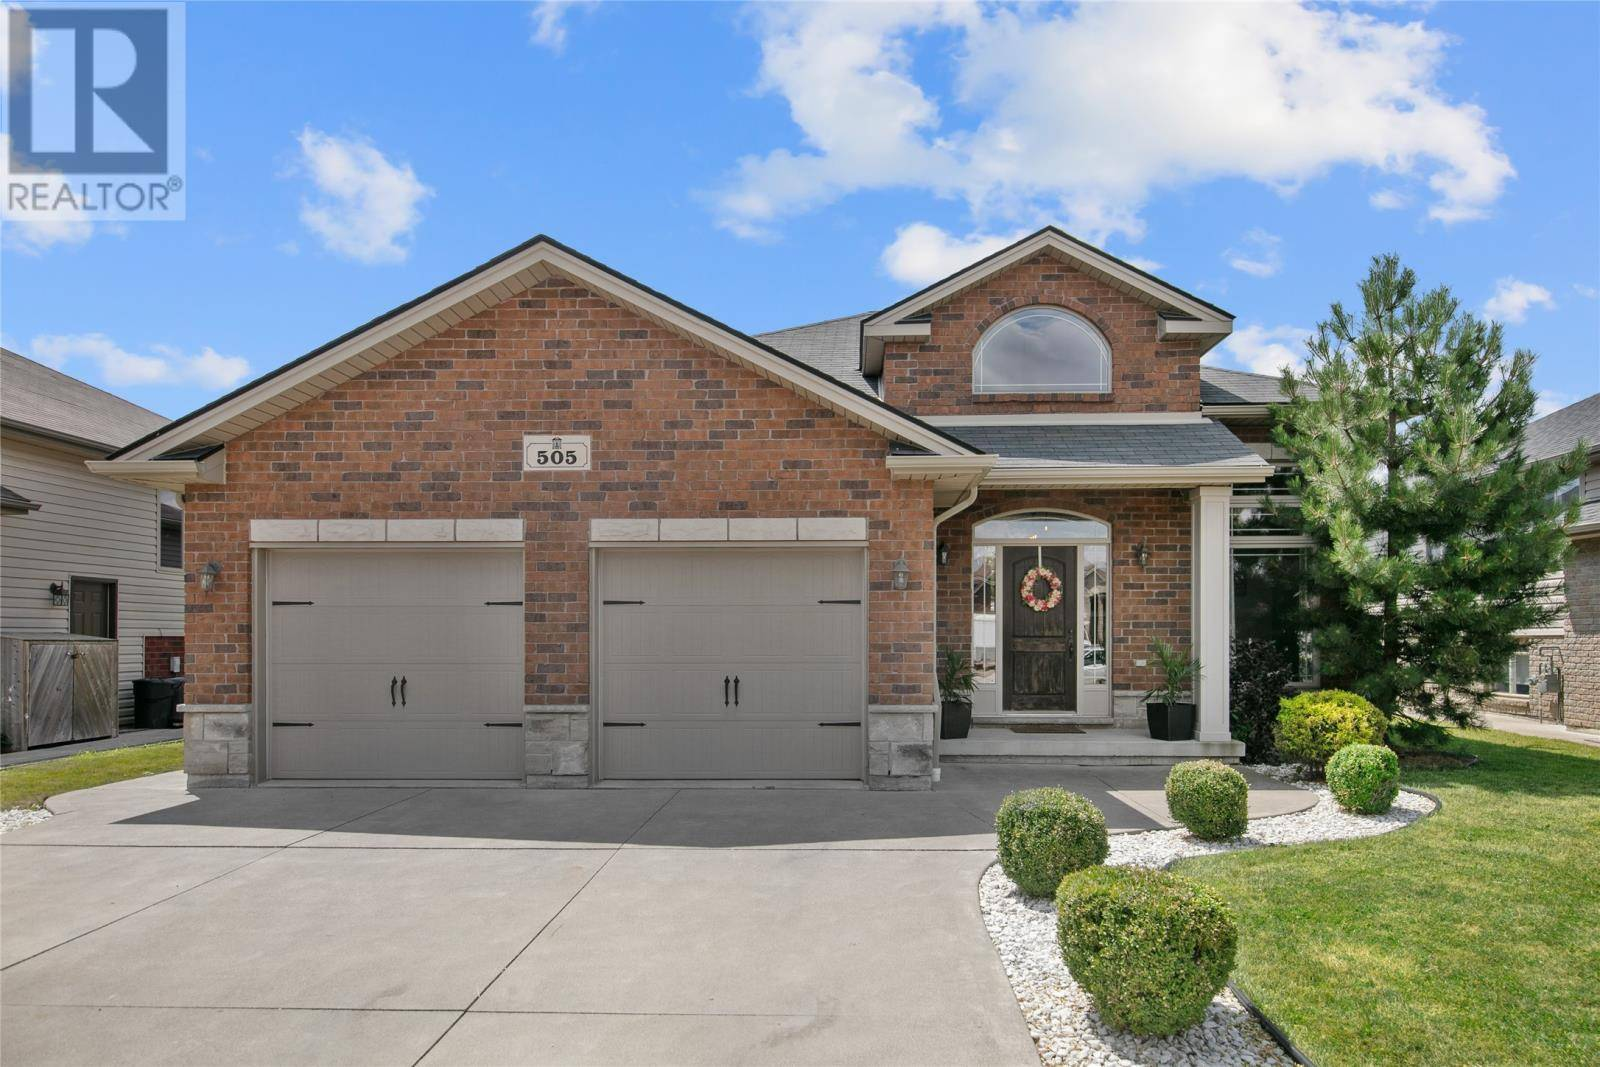 House for sale at 505 Welsh  Amherstburg Ontario - MLS: 19023337